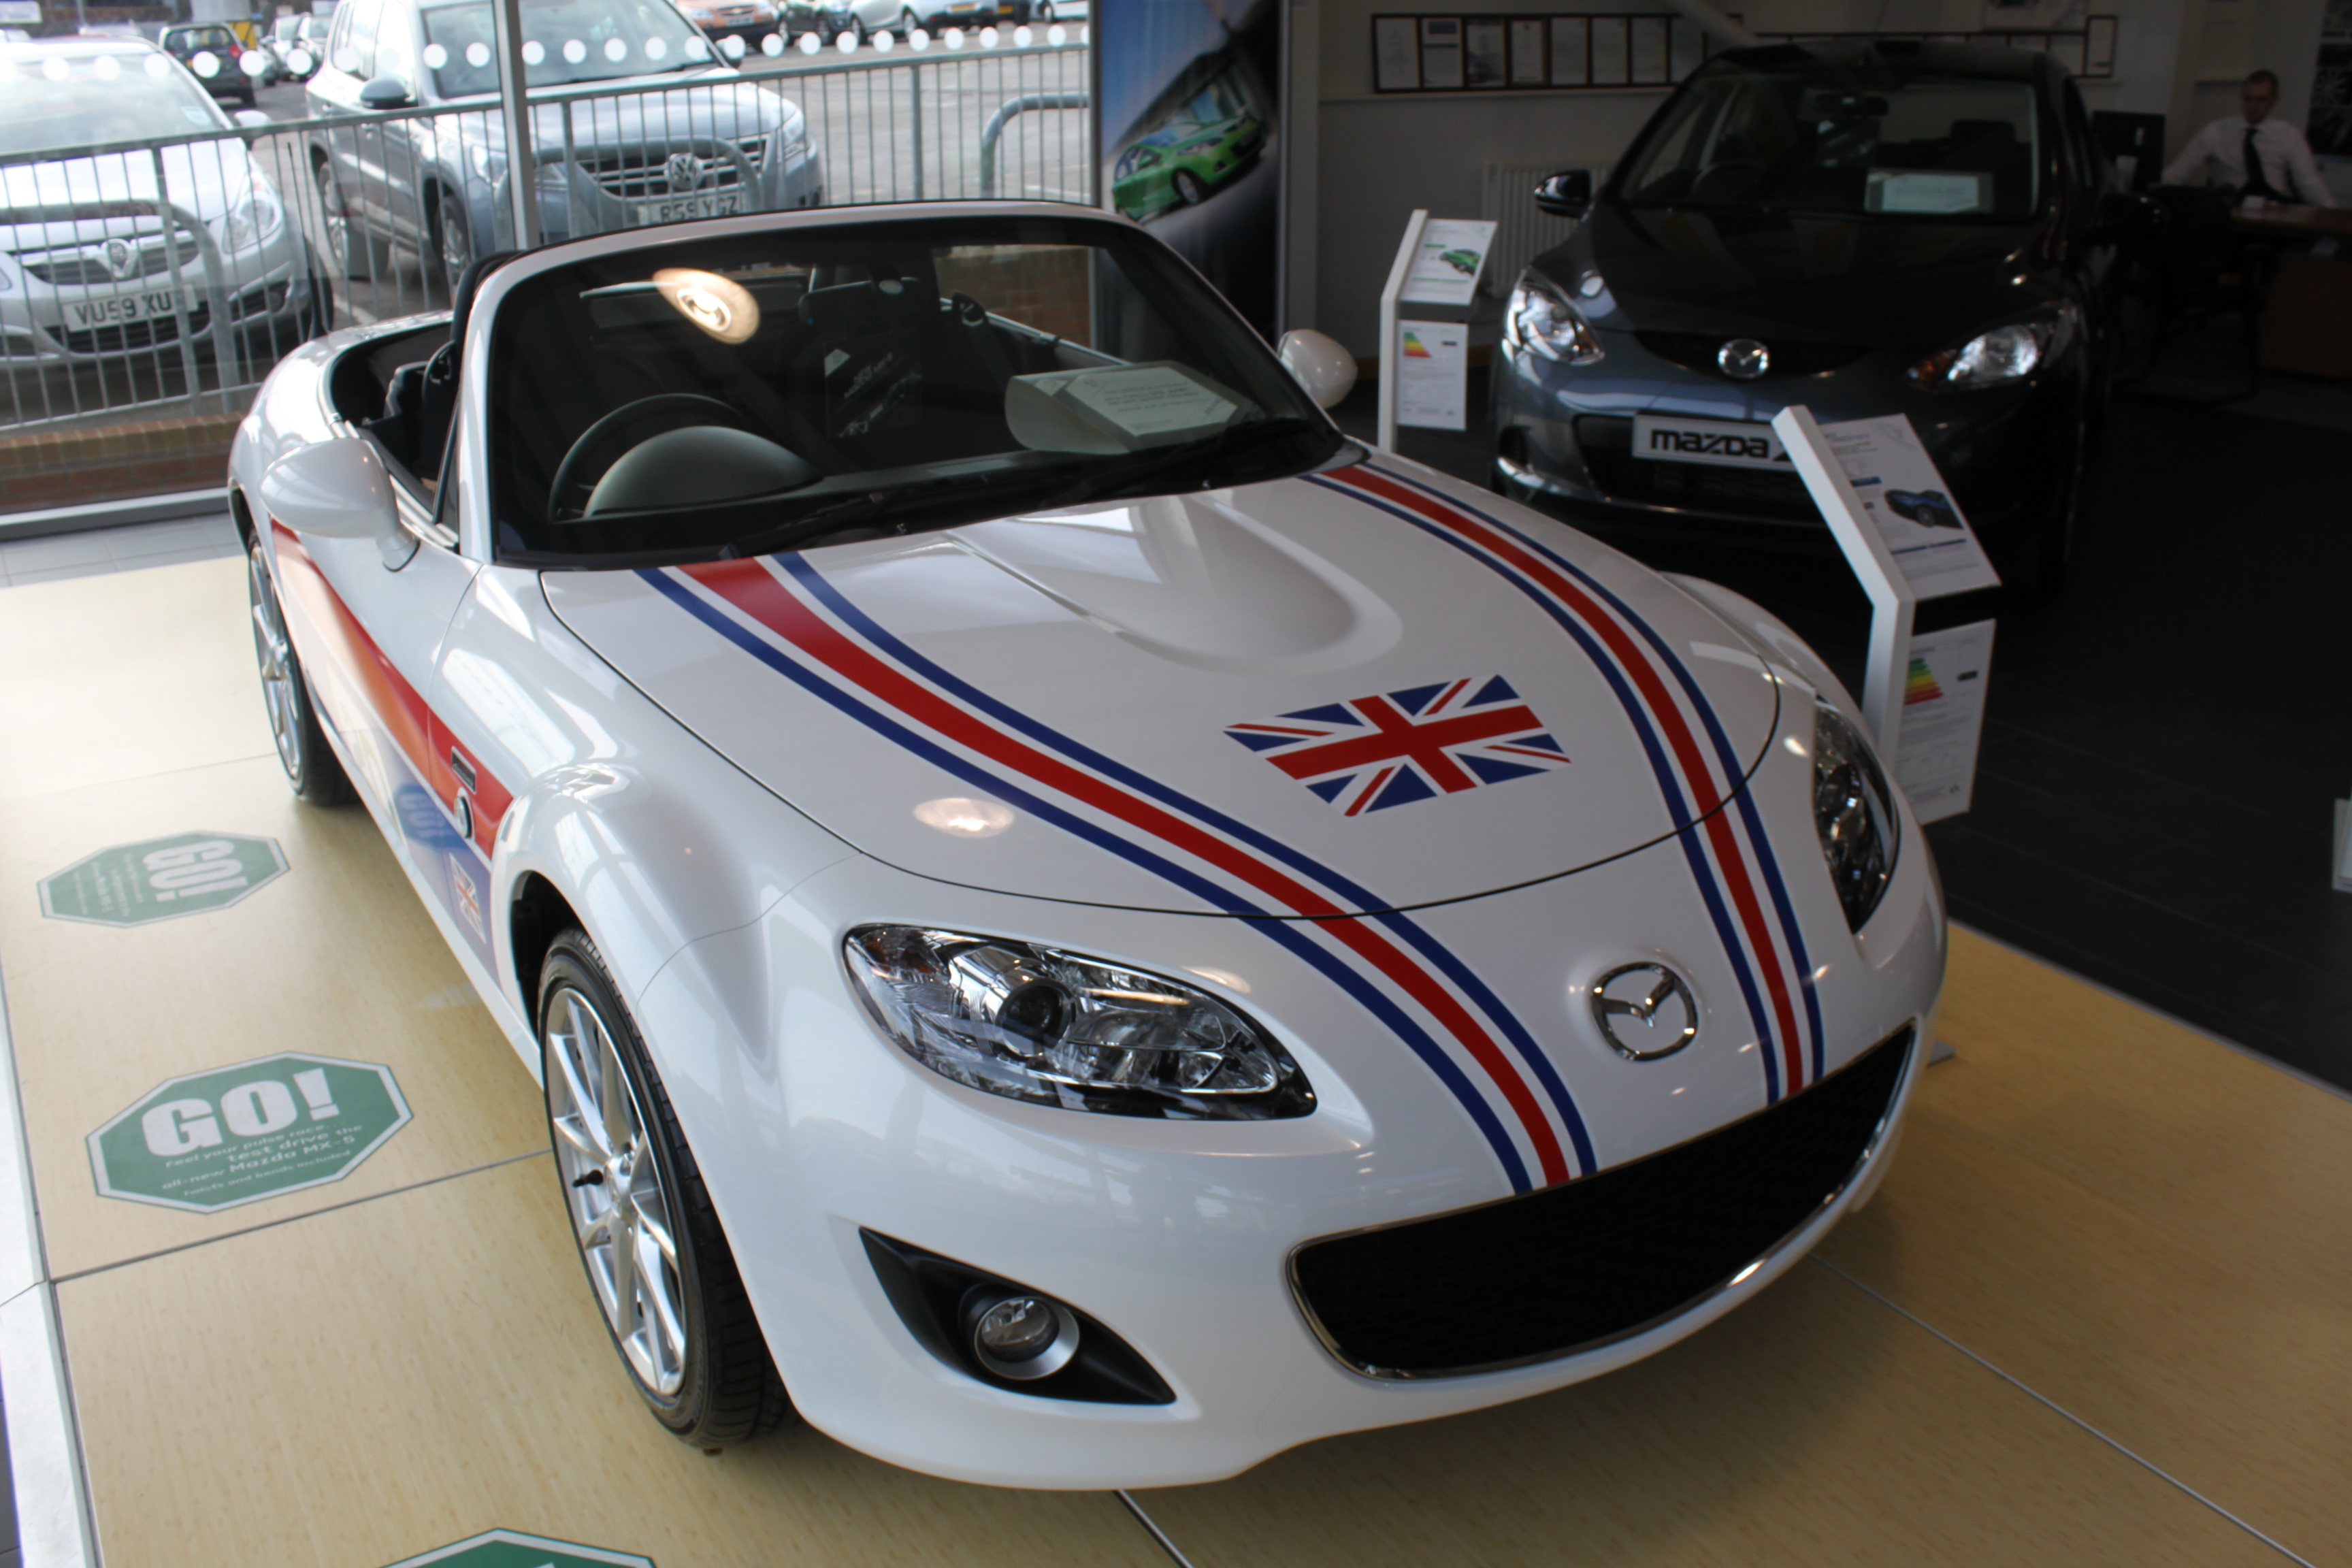 Mazda MX-5 20 Anniversary - March 2010 - 02 | Flickr - Photo Sharing!